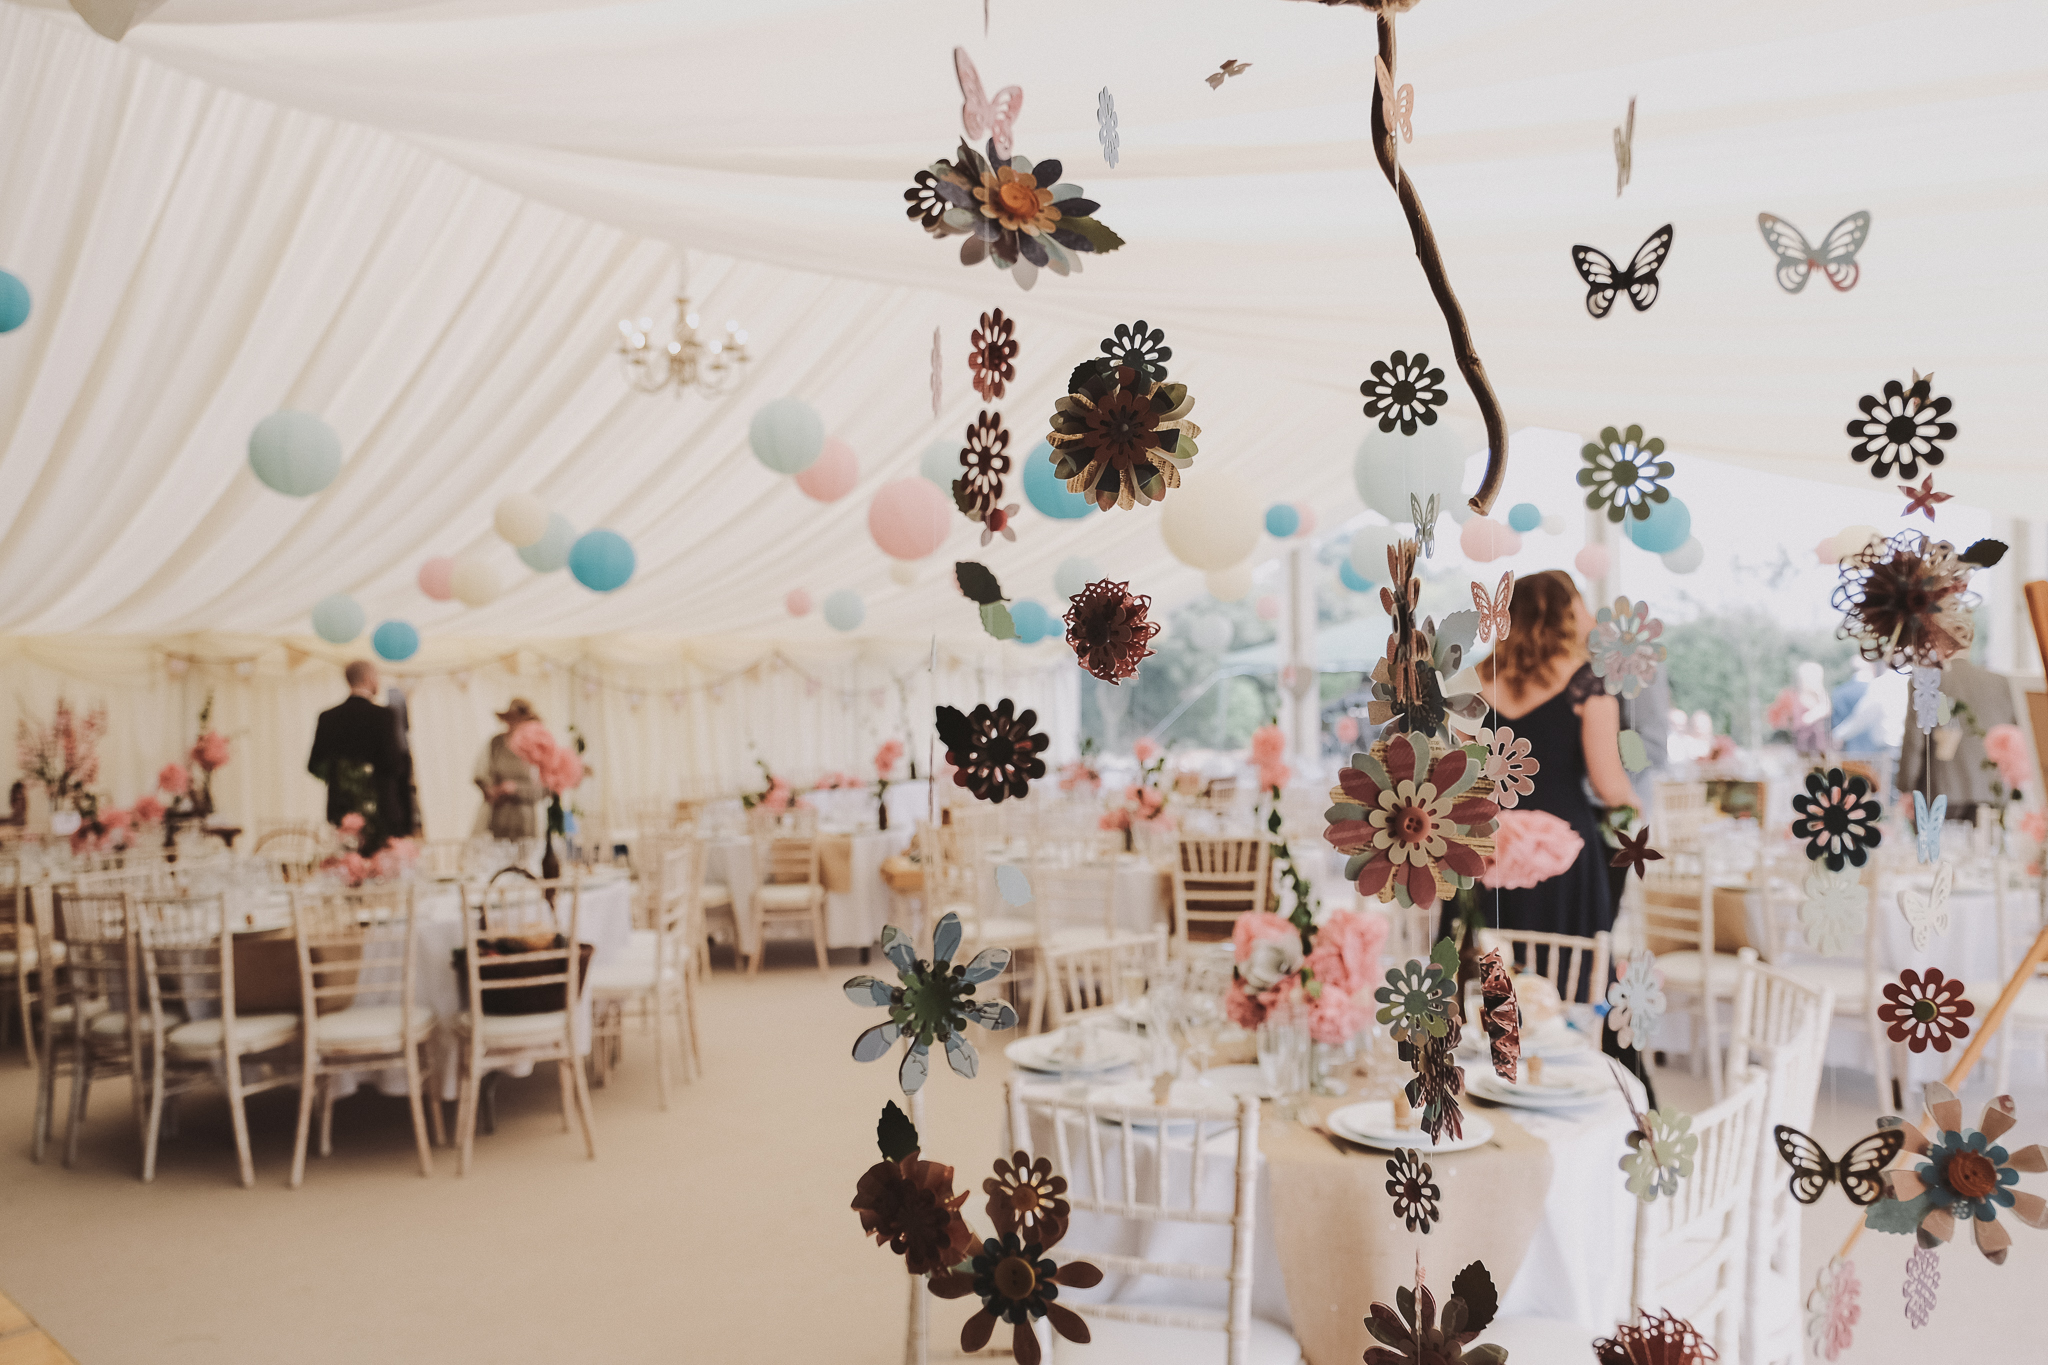 Paper decorations hang in in a wedding marquee